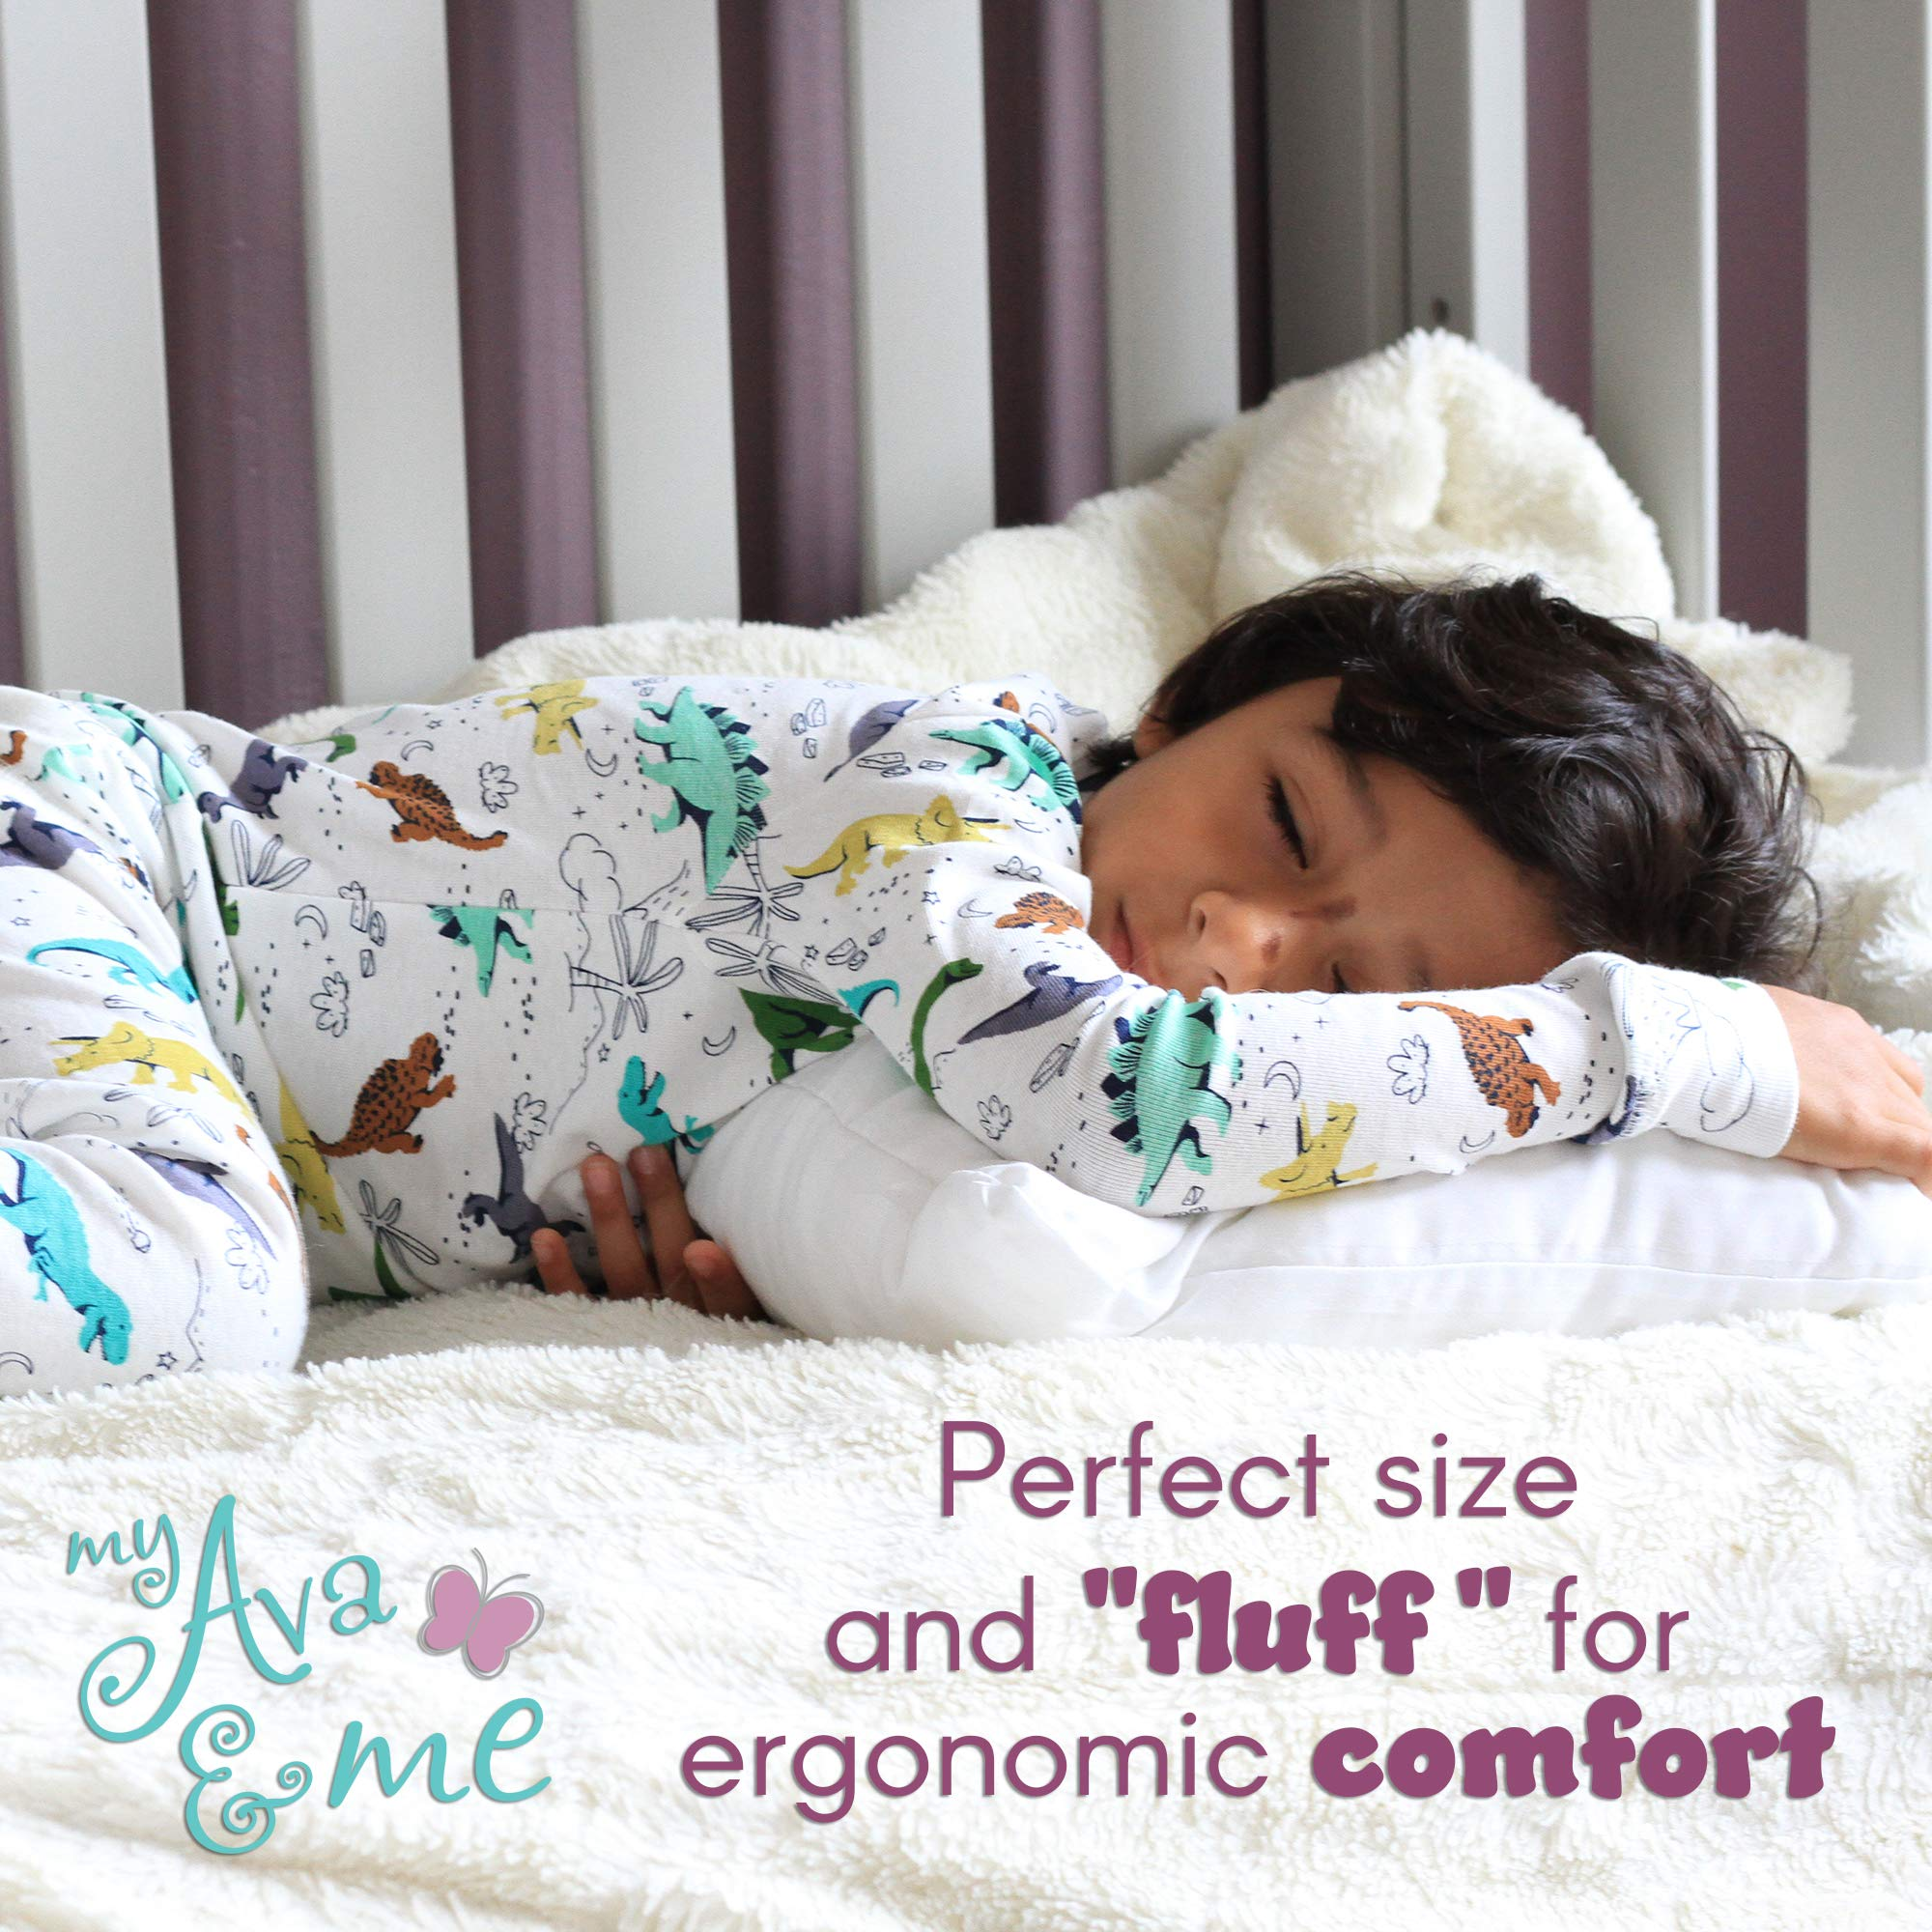 My Ava & Me: Perfect Little Sleep Pillow for Toddlers 13 x 18 Hypoallergenic 100% Cotton Soft No Crinkle Noise by my Ava and Me (Image #4)